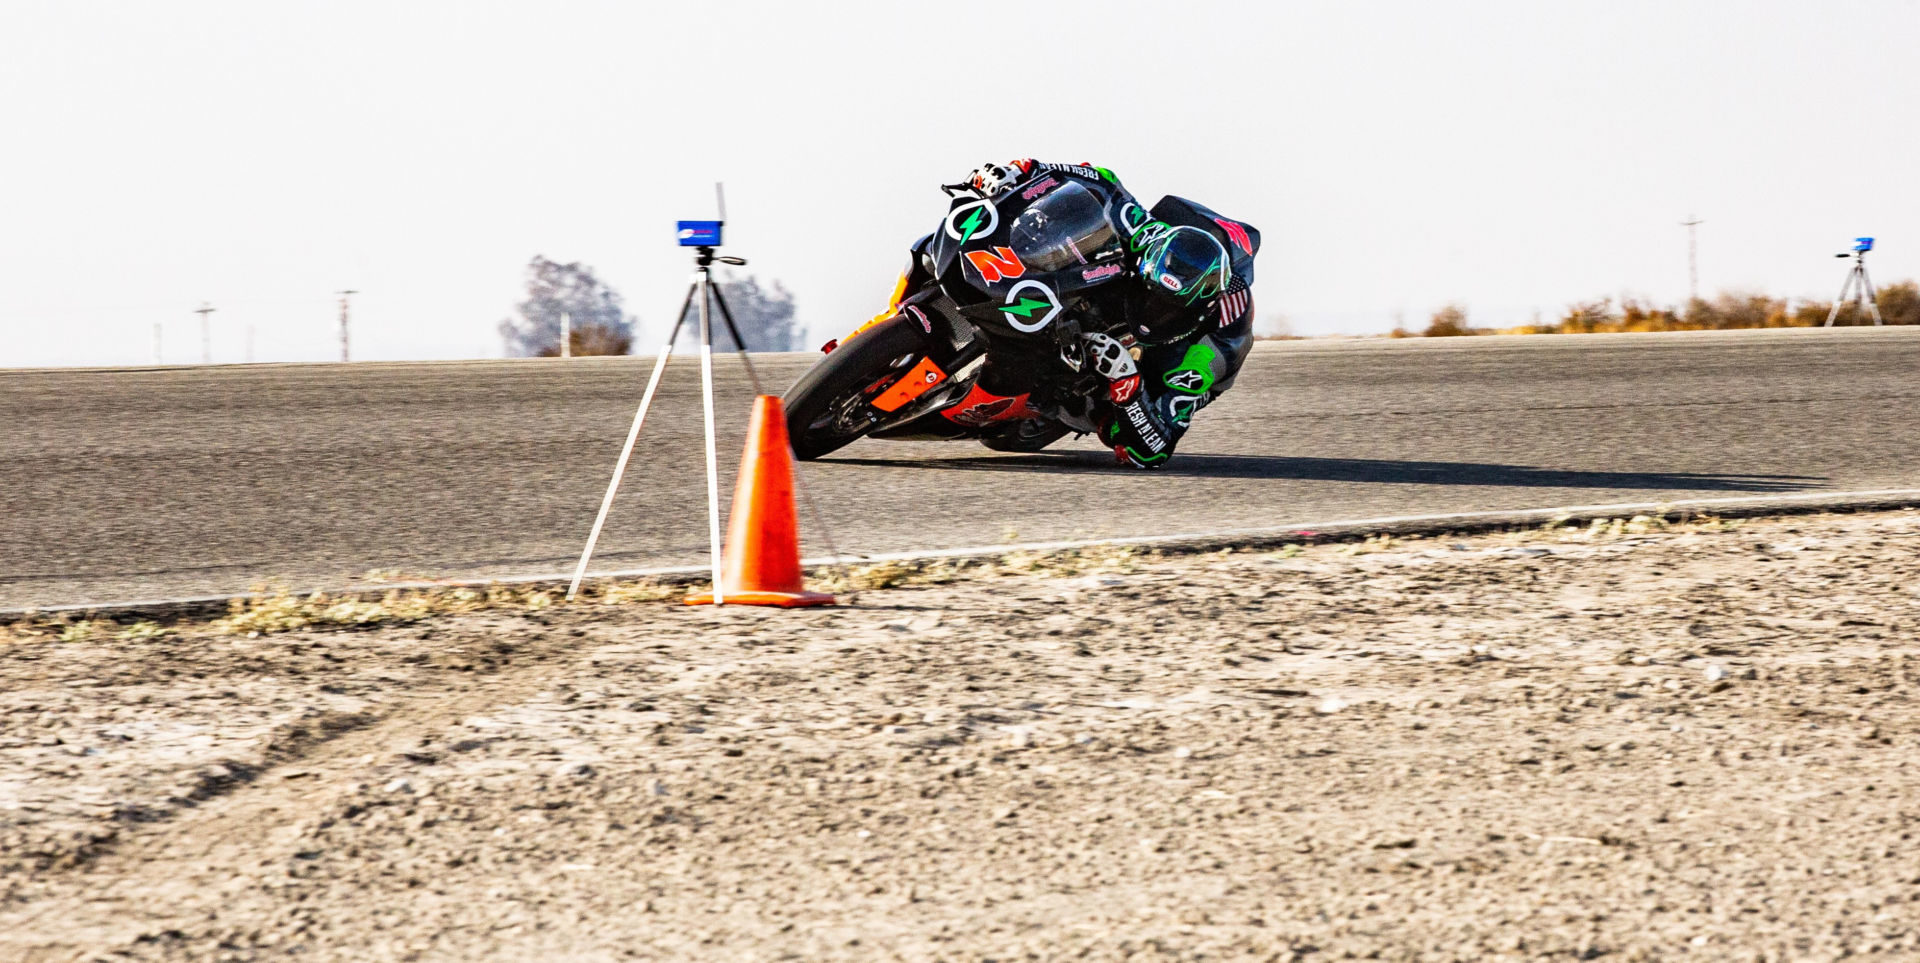 Josh Herrin (2) dragging his elbow as he approaches an electronic timing instrument at Buttonwillow Raceway Park. Photo courtesy Fresh n' Lean.